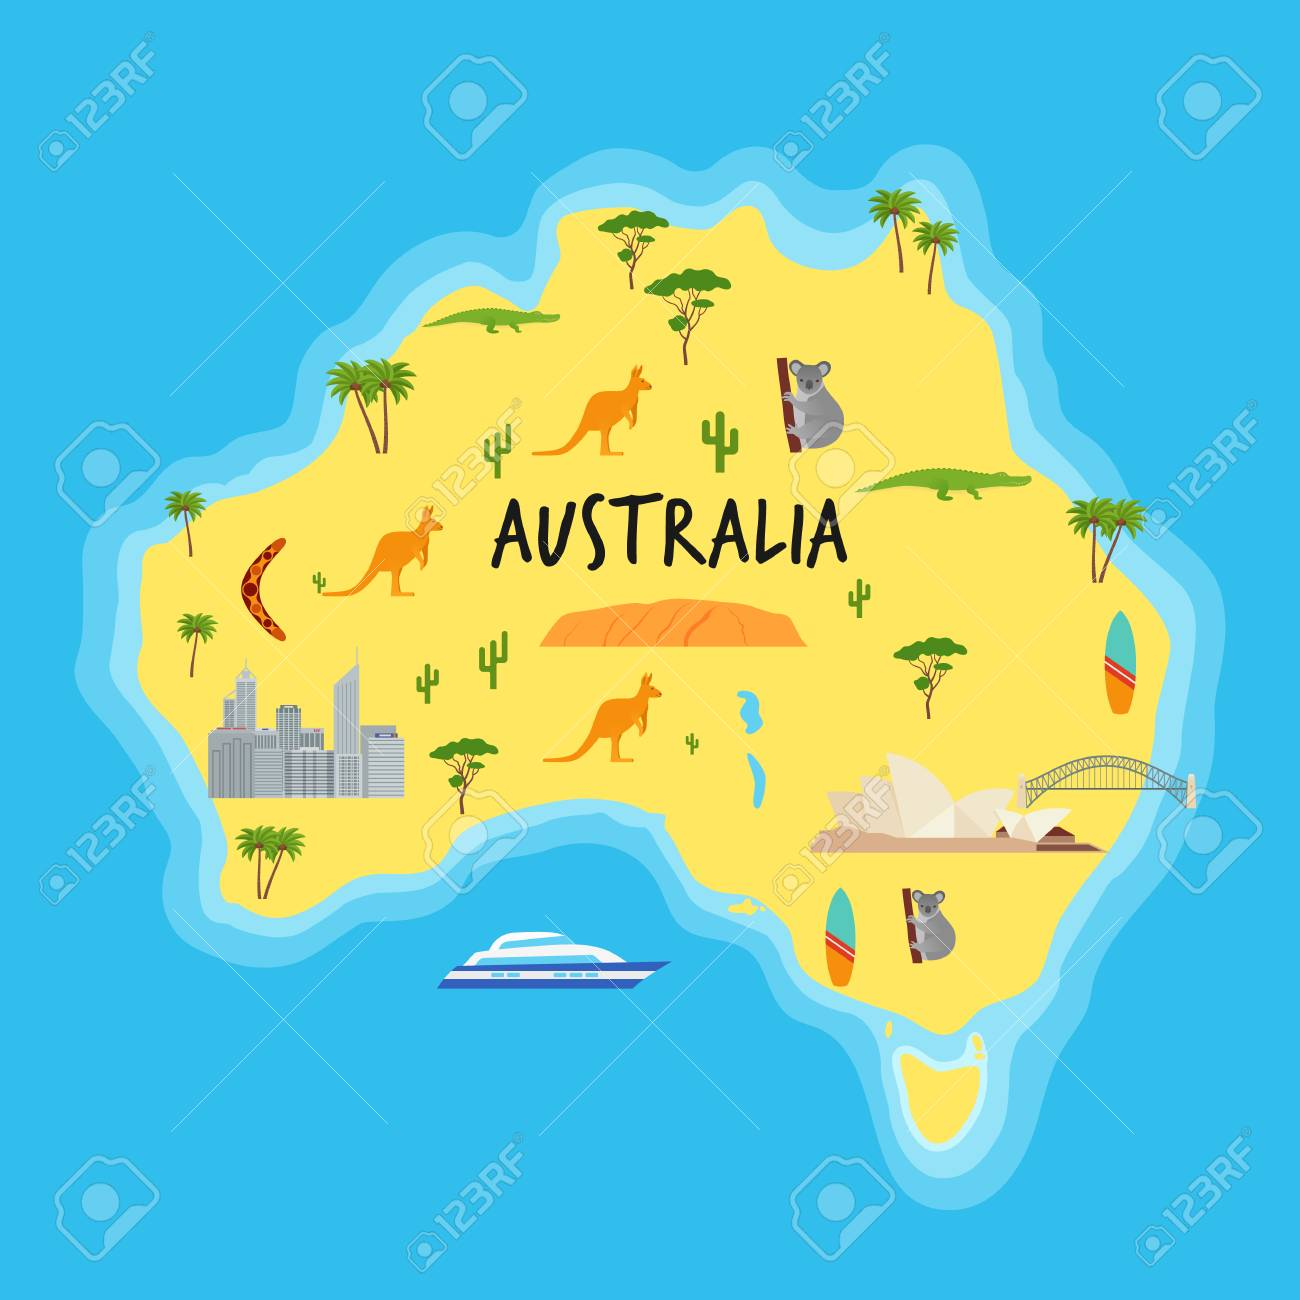 Australia Travel Map.Australia Cartoon Map Vector Australian State With Travel Icons